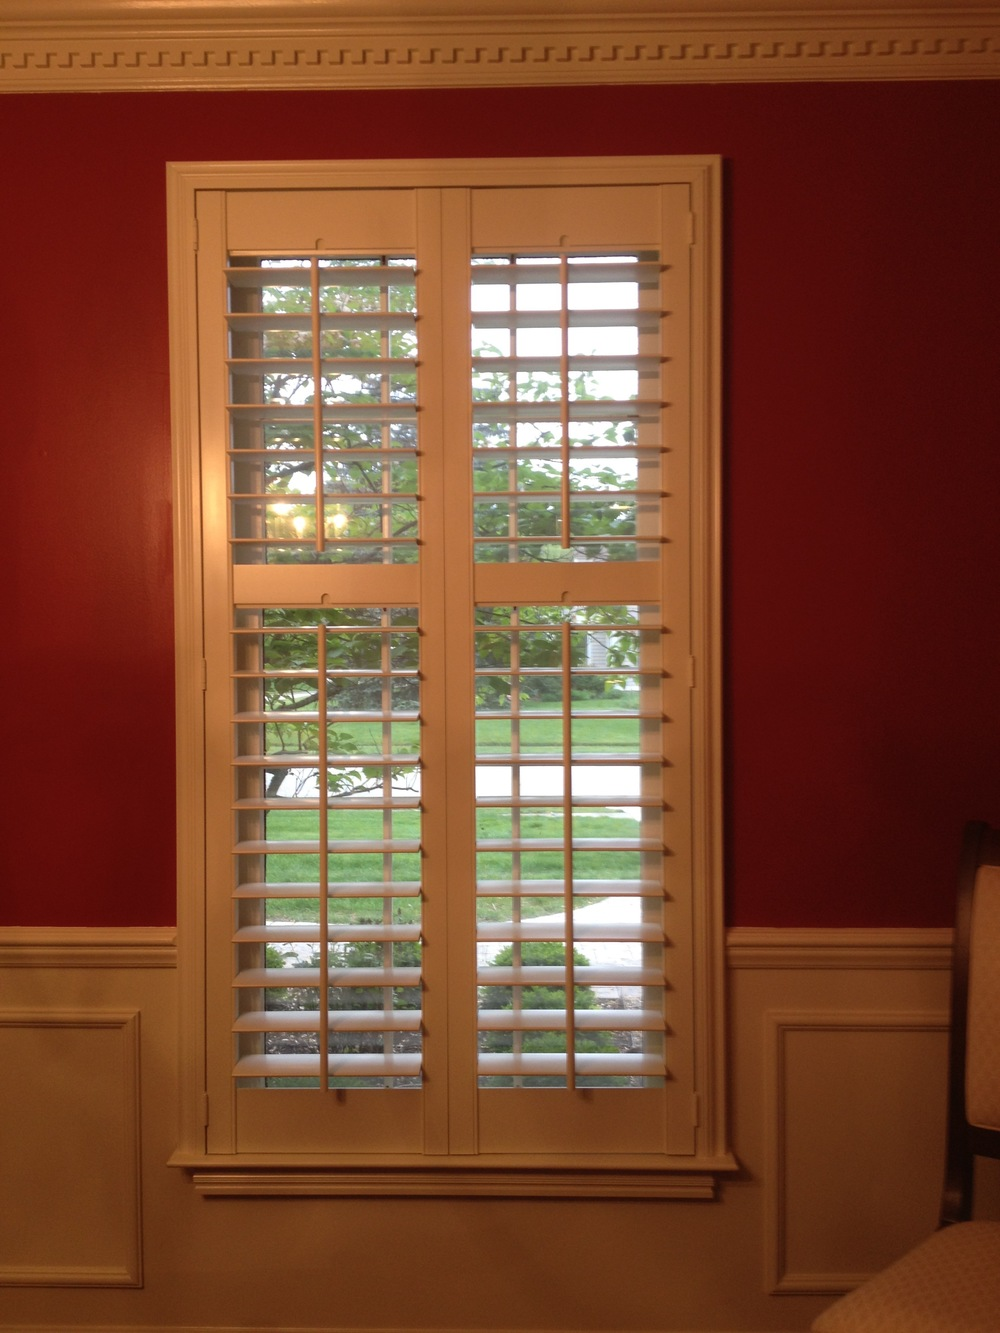 3 1_2 inch Composite Shutter with Added Sill.jpg